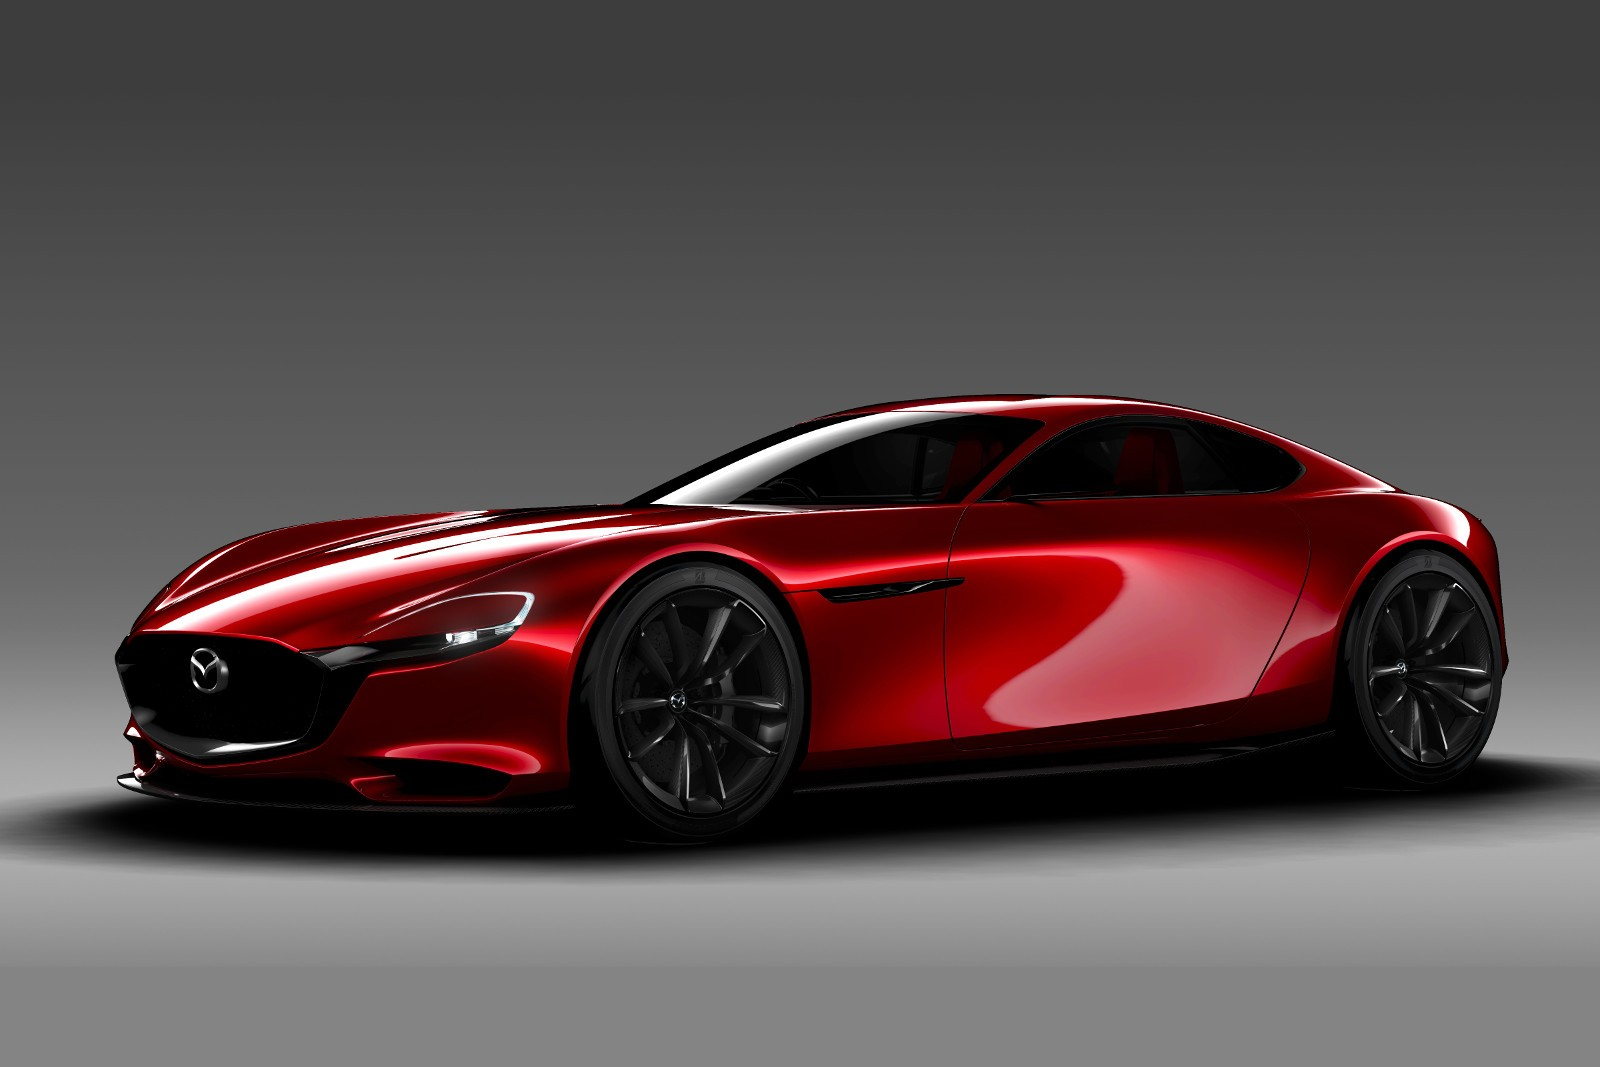 2020 Mazda Rx 9 Allegedly Approved For Production 400 Ps